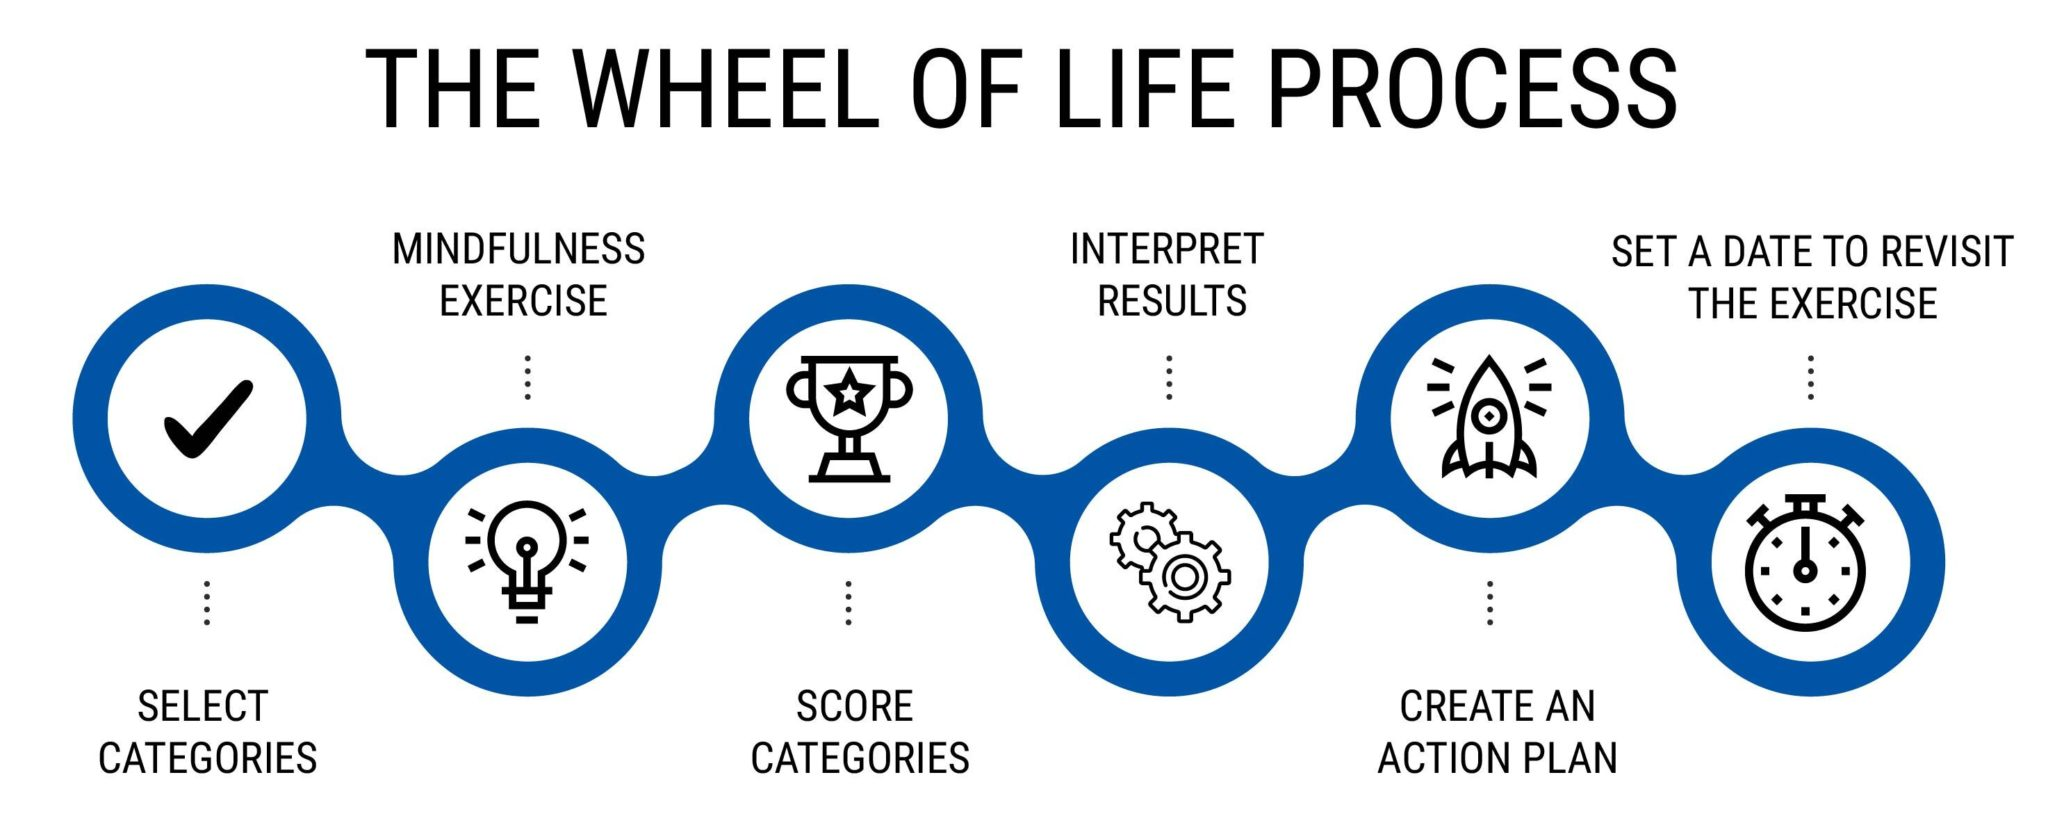 THE WHEEL OF LIFE PROCESS